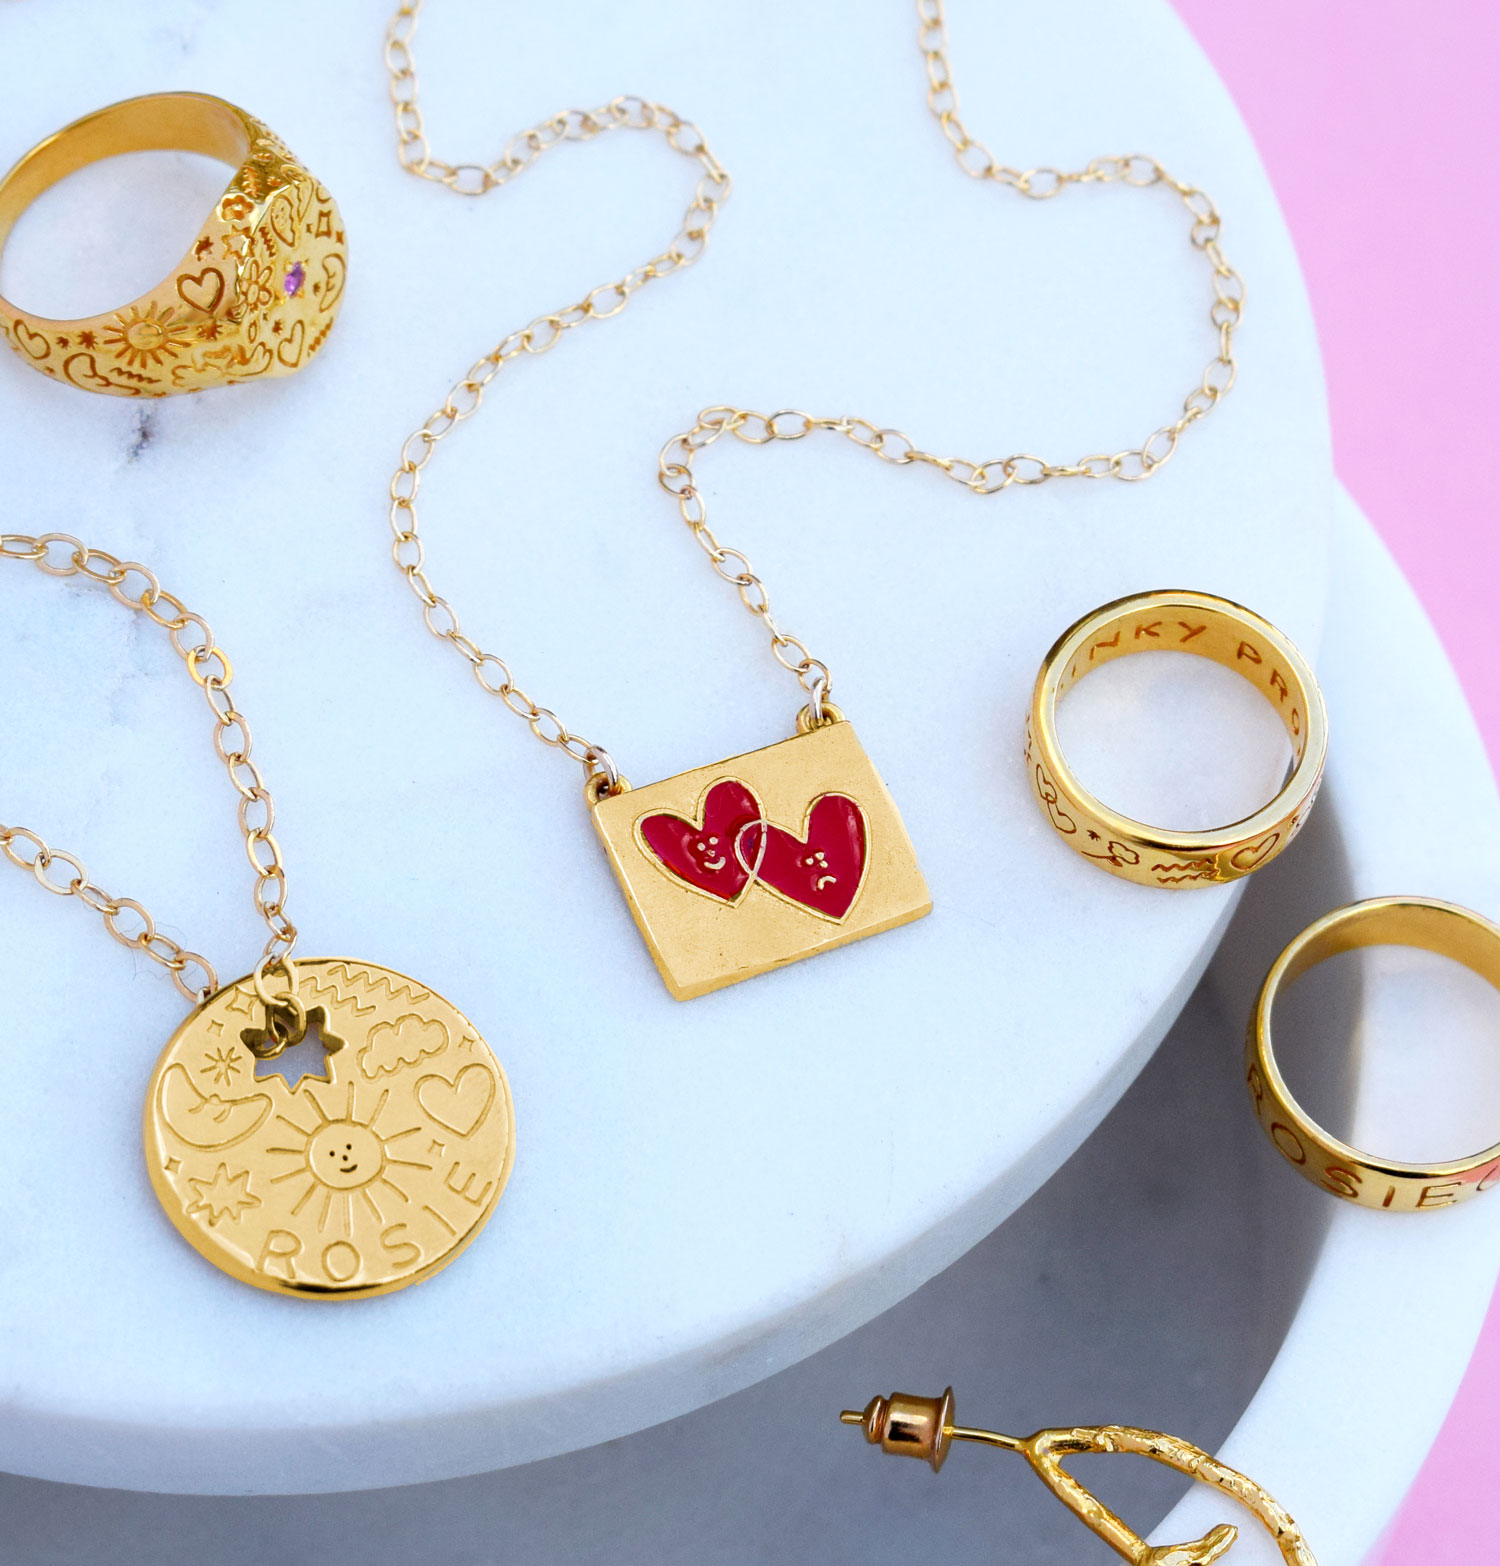 Collection of gold jewellery pieces covered in doodle-style illustrations.